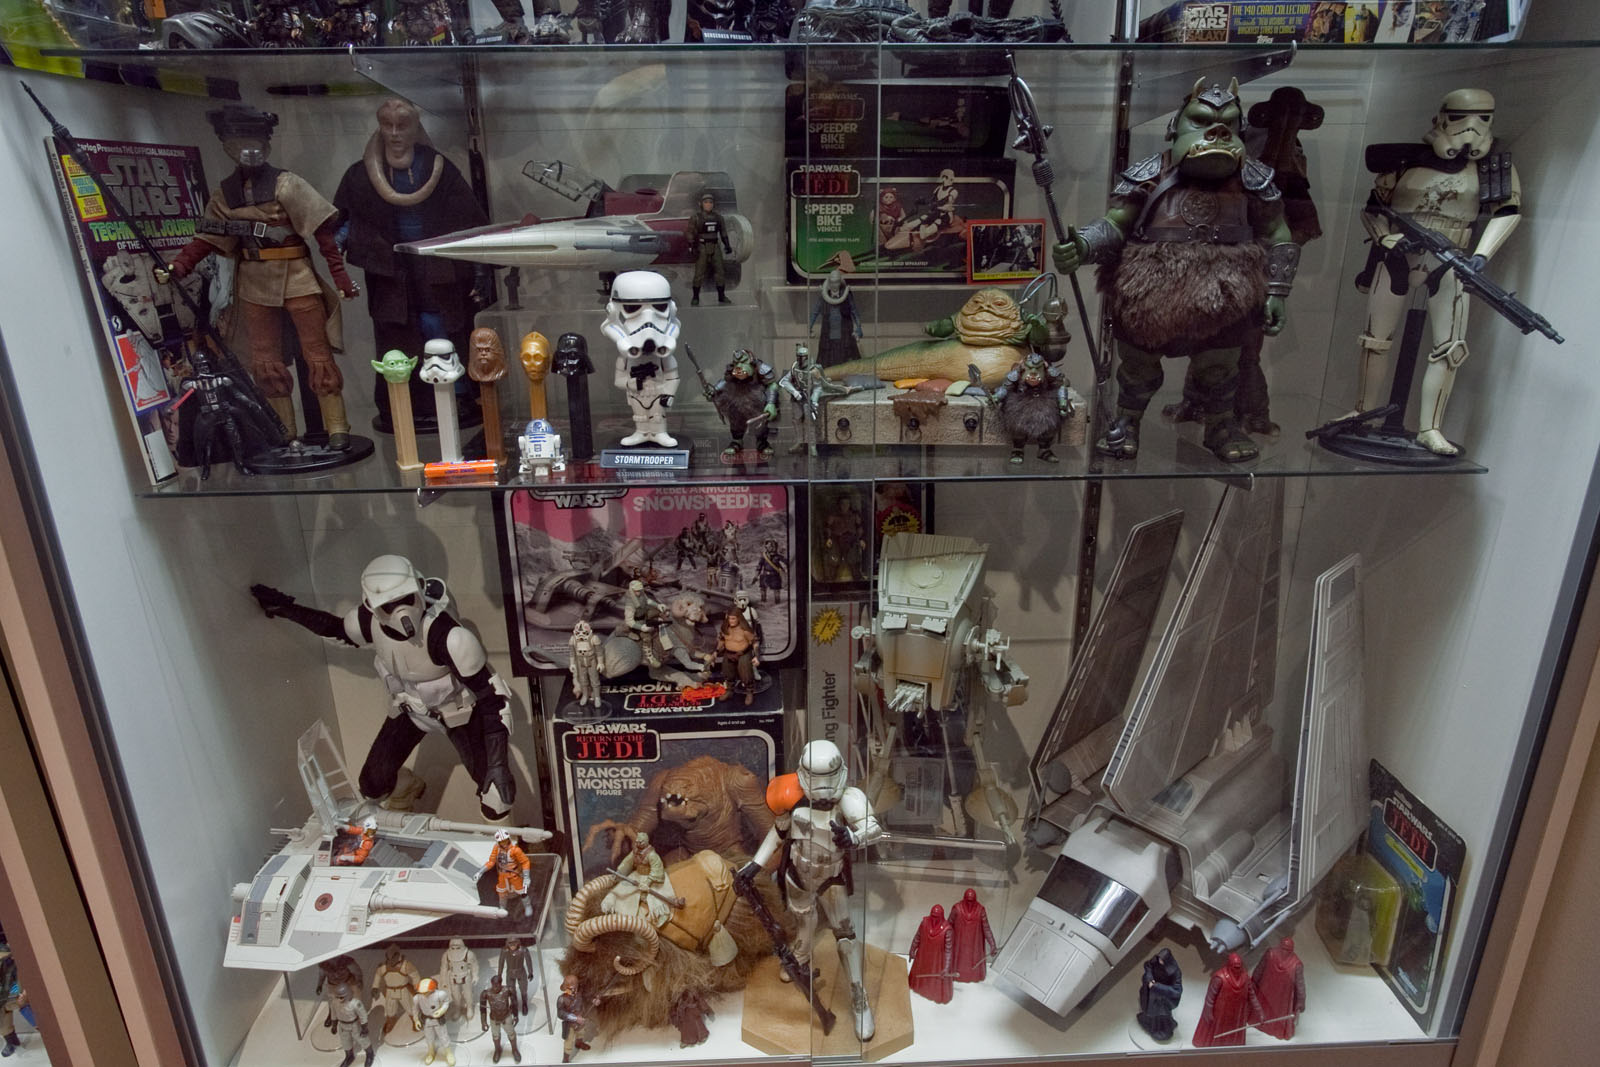 80 Toy Action Figure Shelves - chriscollection9_Fantastic 80 Toy Action Figure Shelves - chriscollection9  Snapshot_98665.jpg